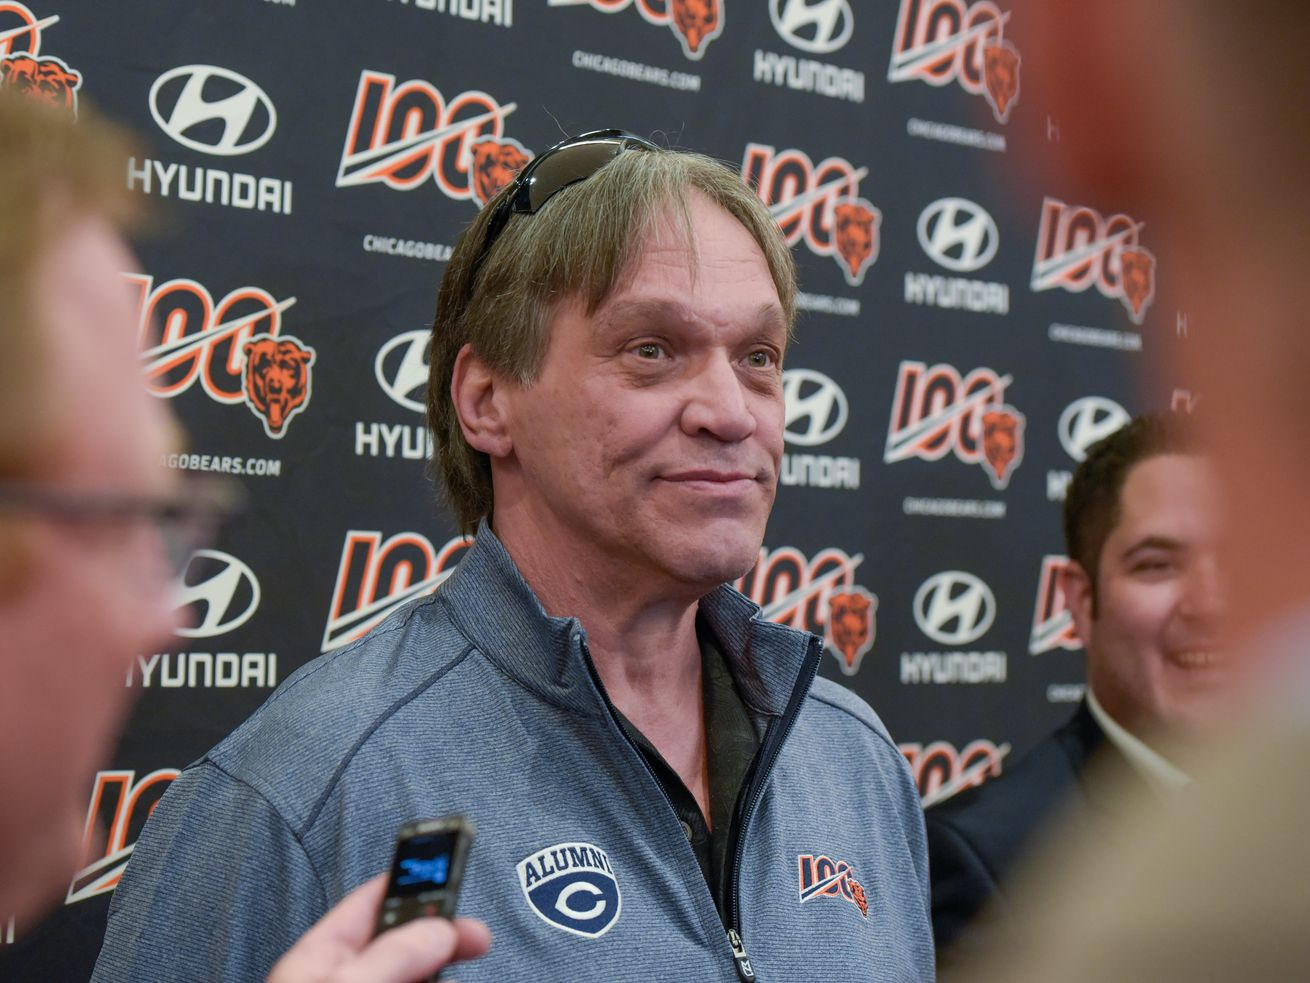 Steve McMichael at the Bears celebration of their 100th season in June 2019.